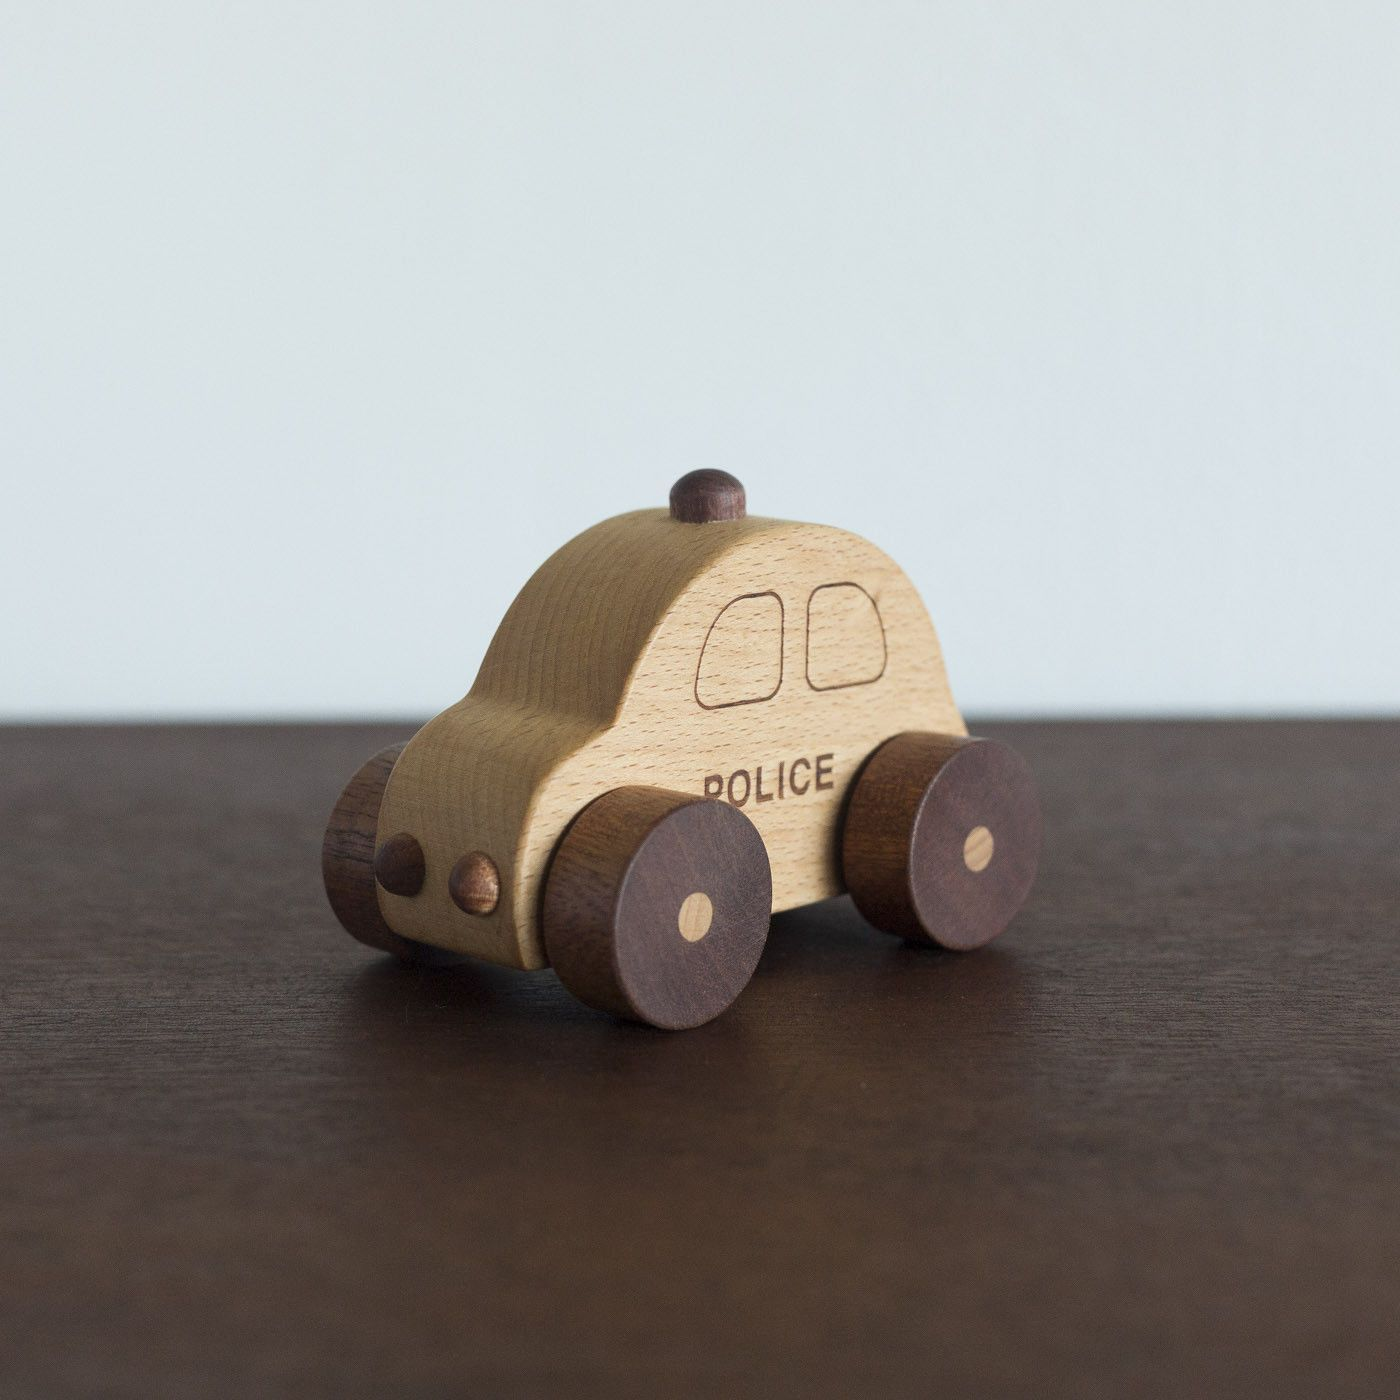 handmade and handcrafted in korea. beautiful wooden toy made